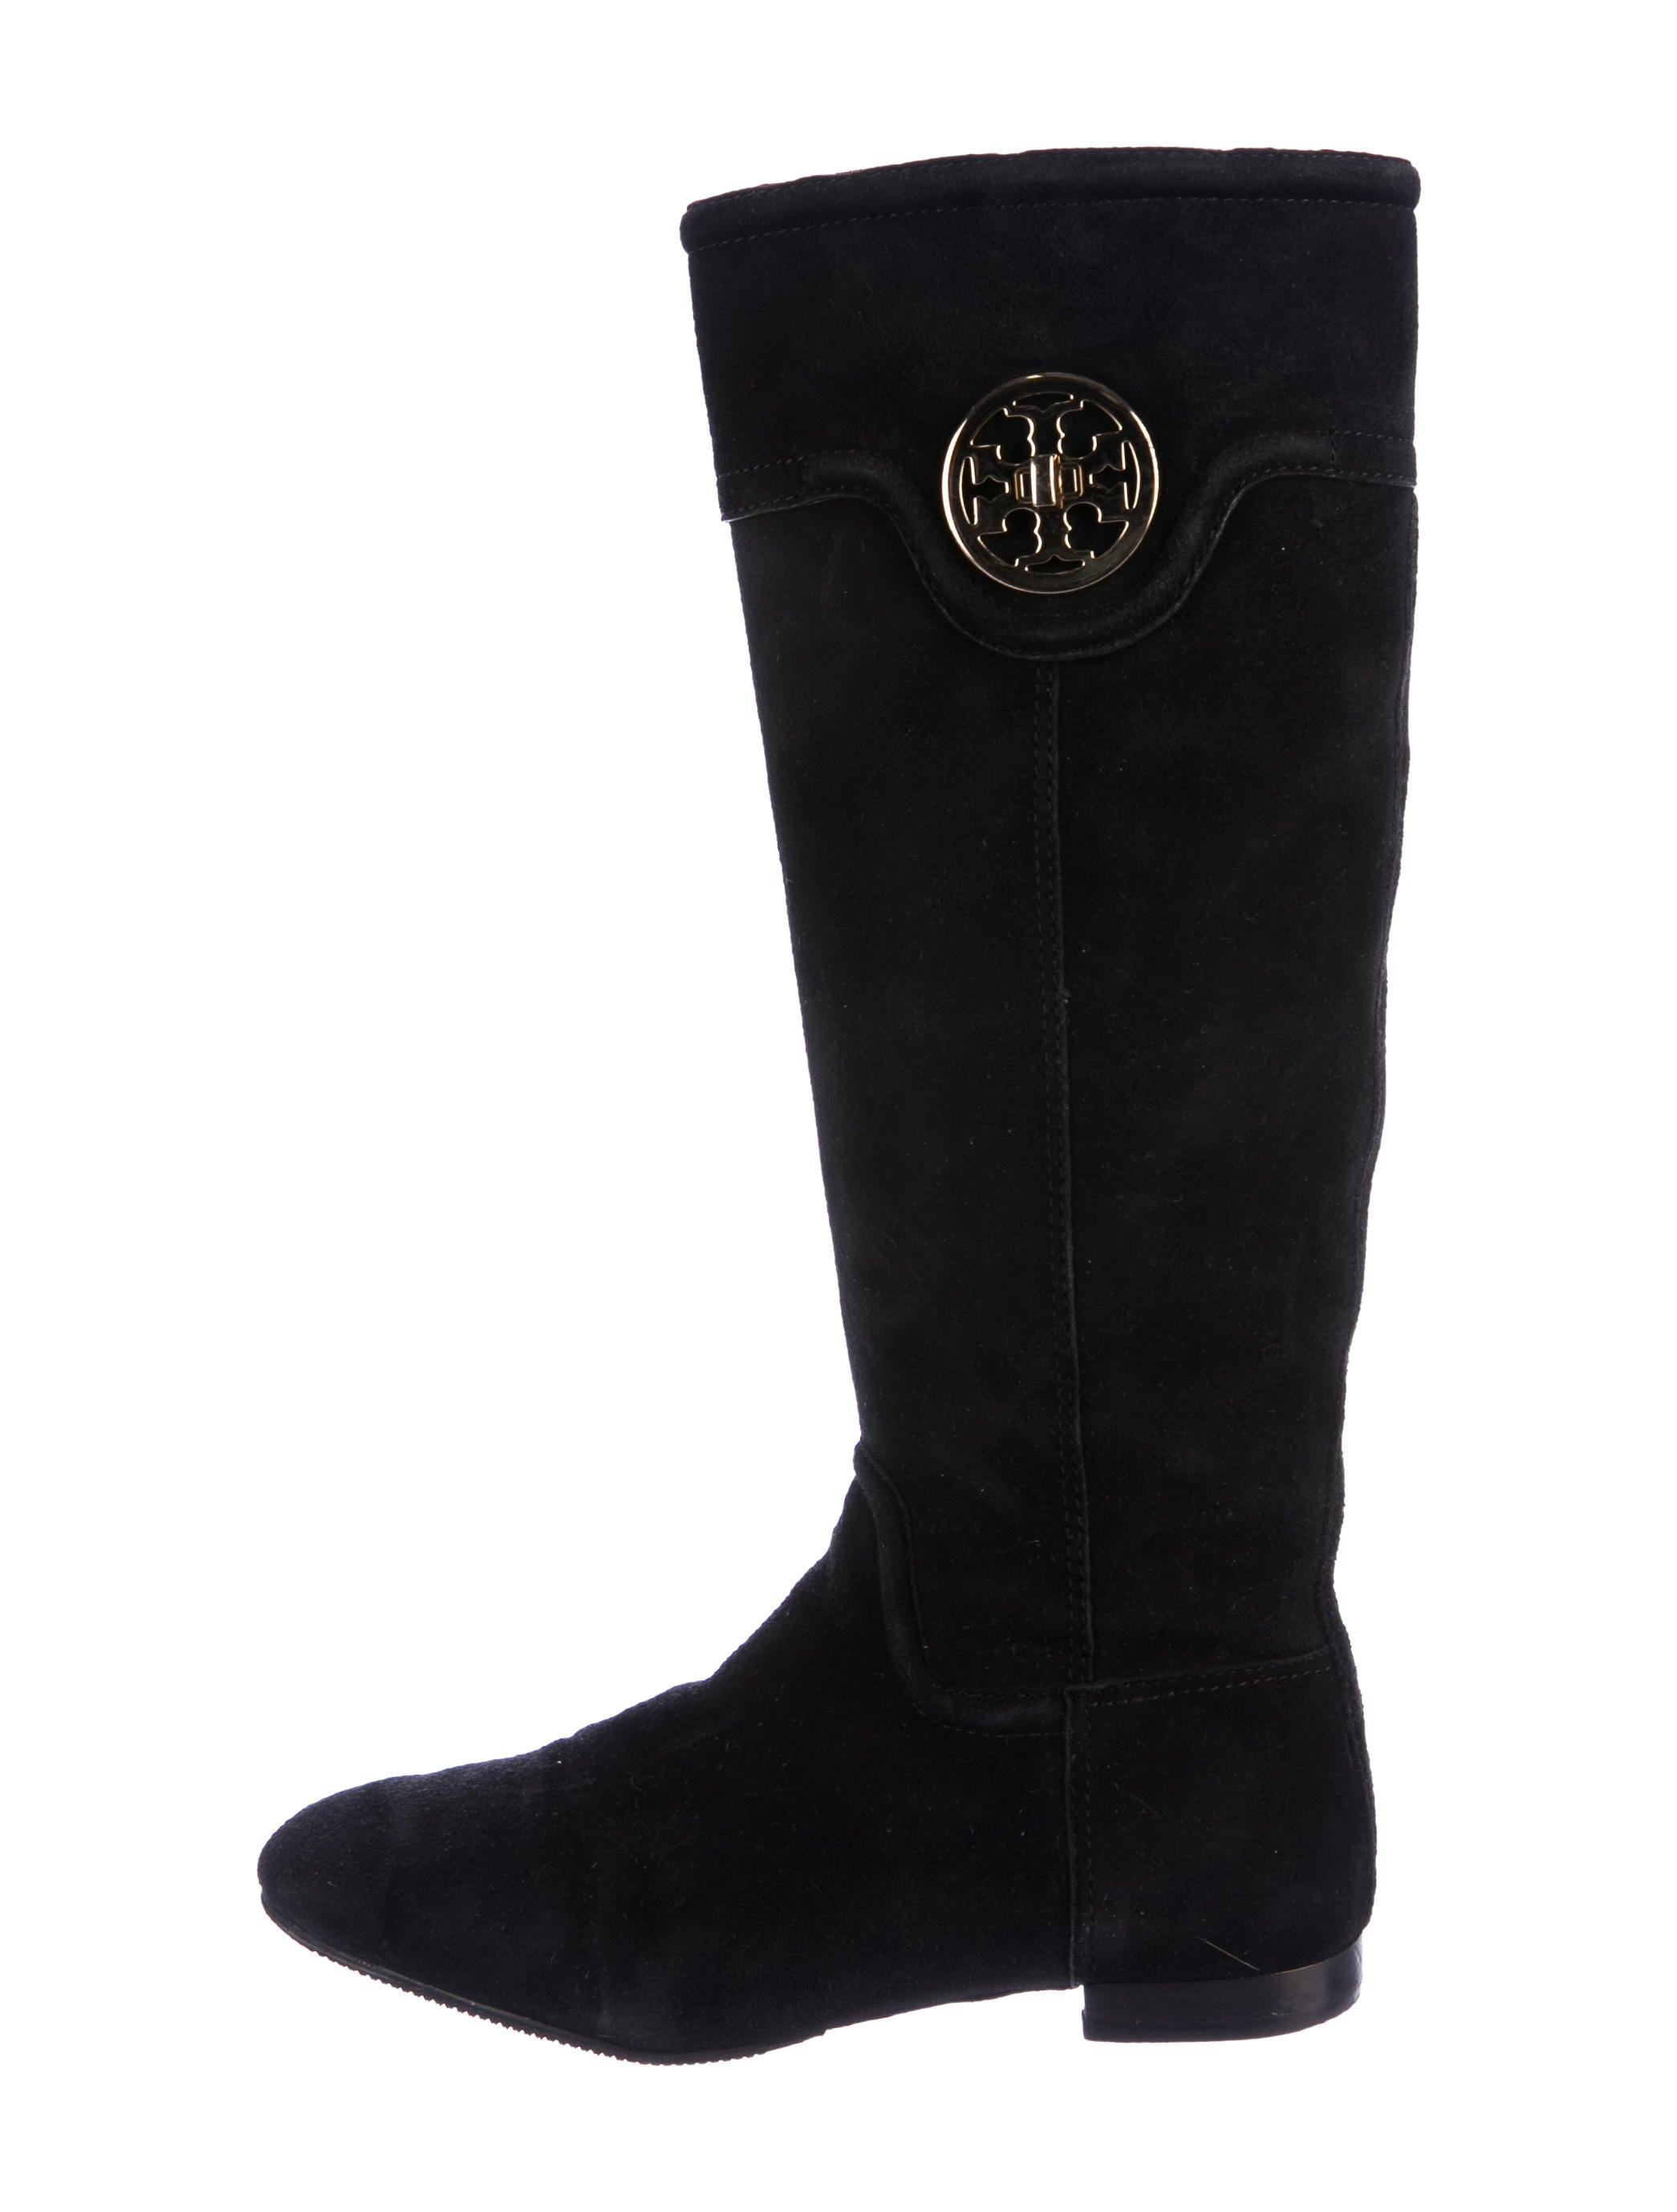 d0d7cff1afa48 Tory Burch Suede Logo Knee-High Boots - Shoes - WTO114065